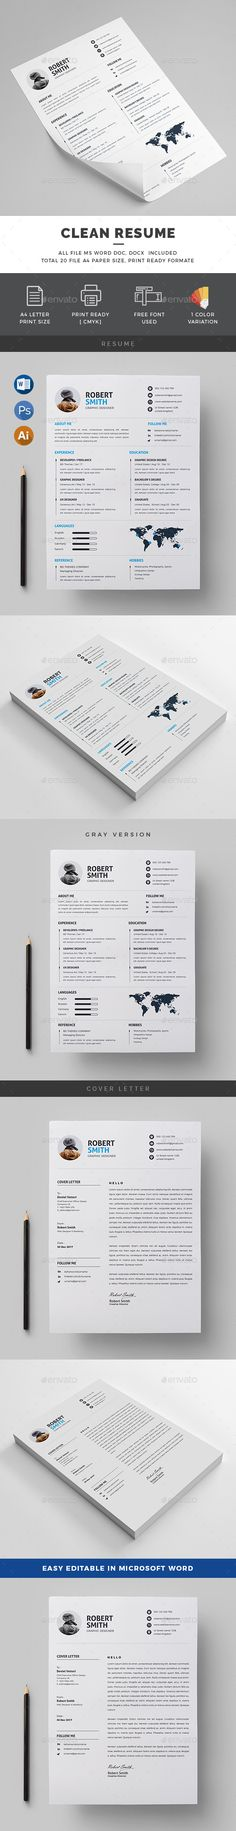 Resume\/CV Resume cv and Ai illustrator - illustrator resume